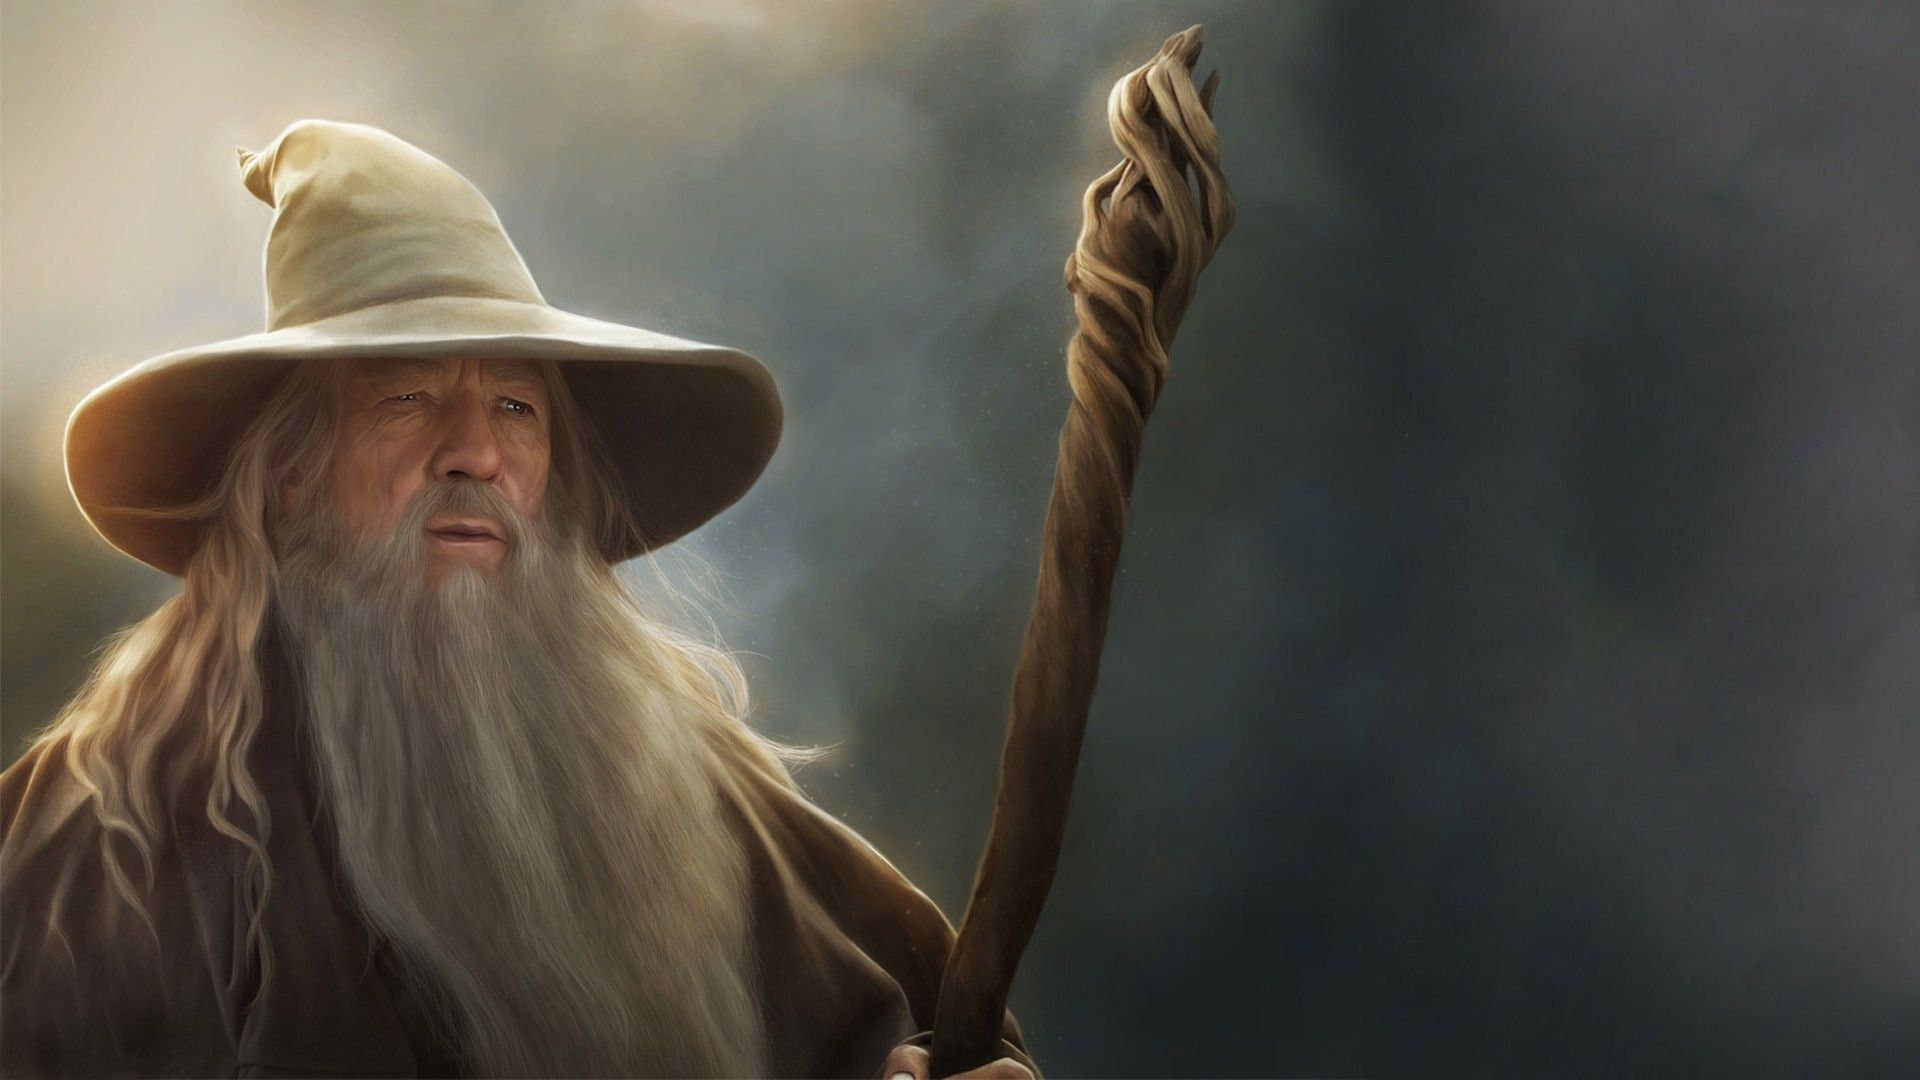 The Character Of Gandalf Was Played In The Movie The Lord Of The Rings By Ian Mckellen